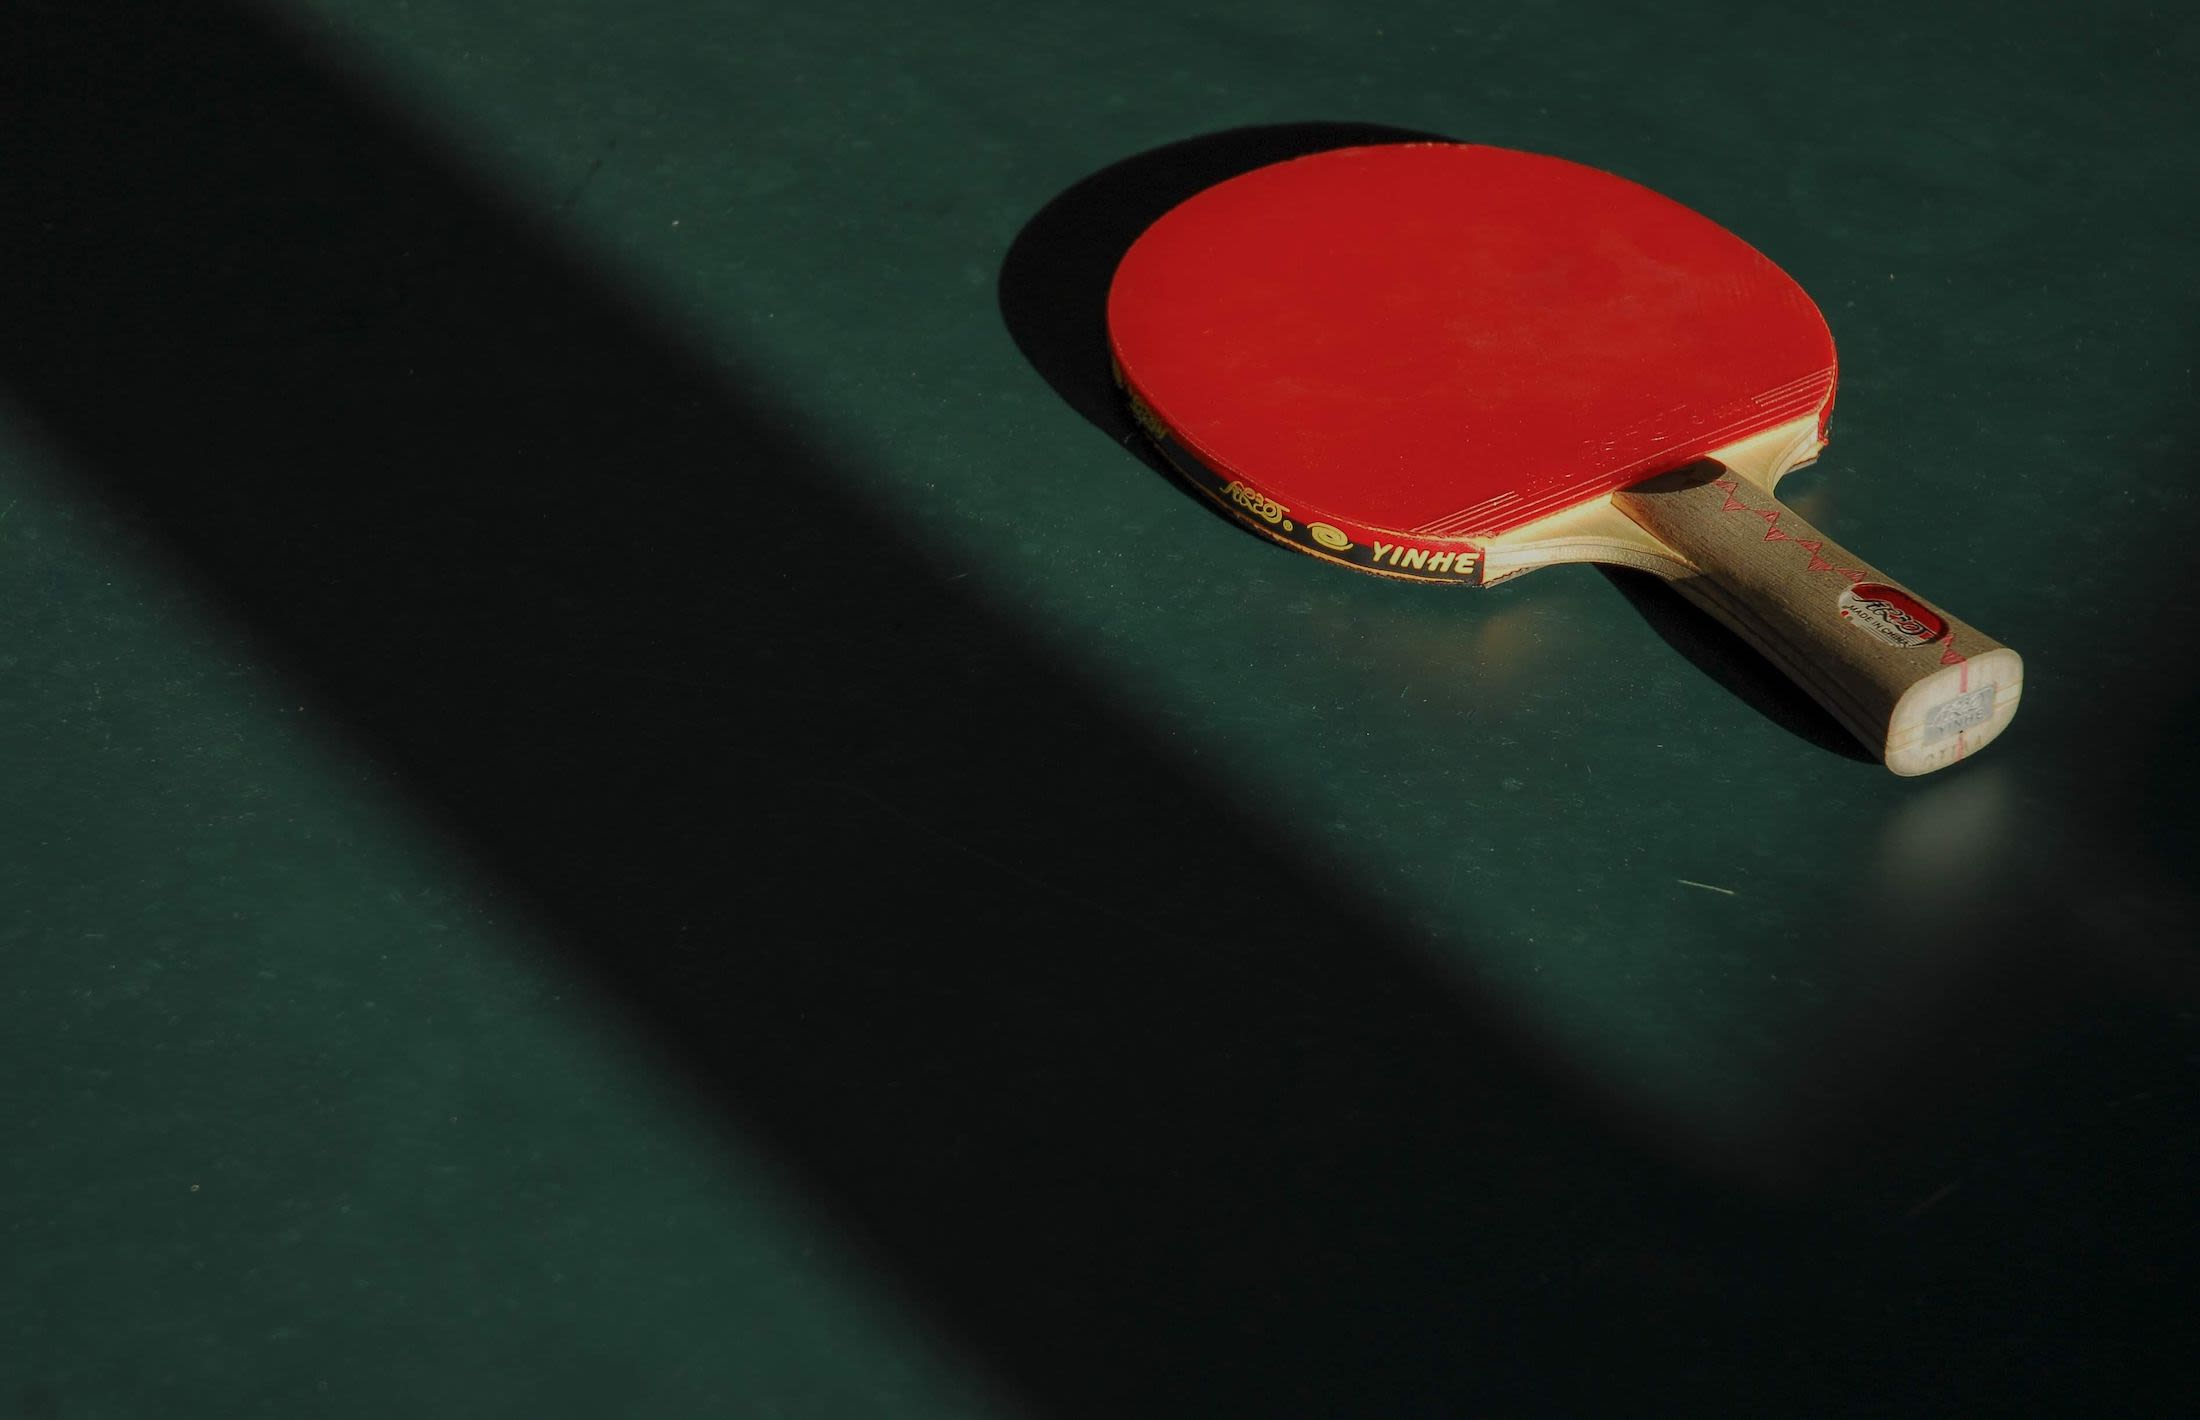 Employee Engagement: It's More Than a Ping Pong Table or Free Soda